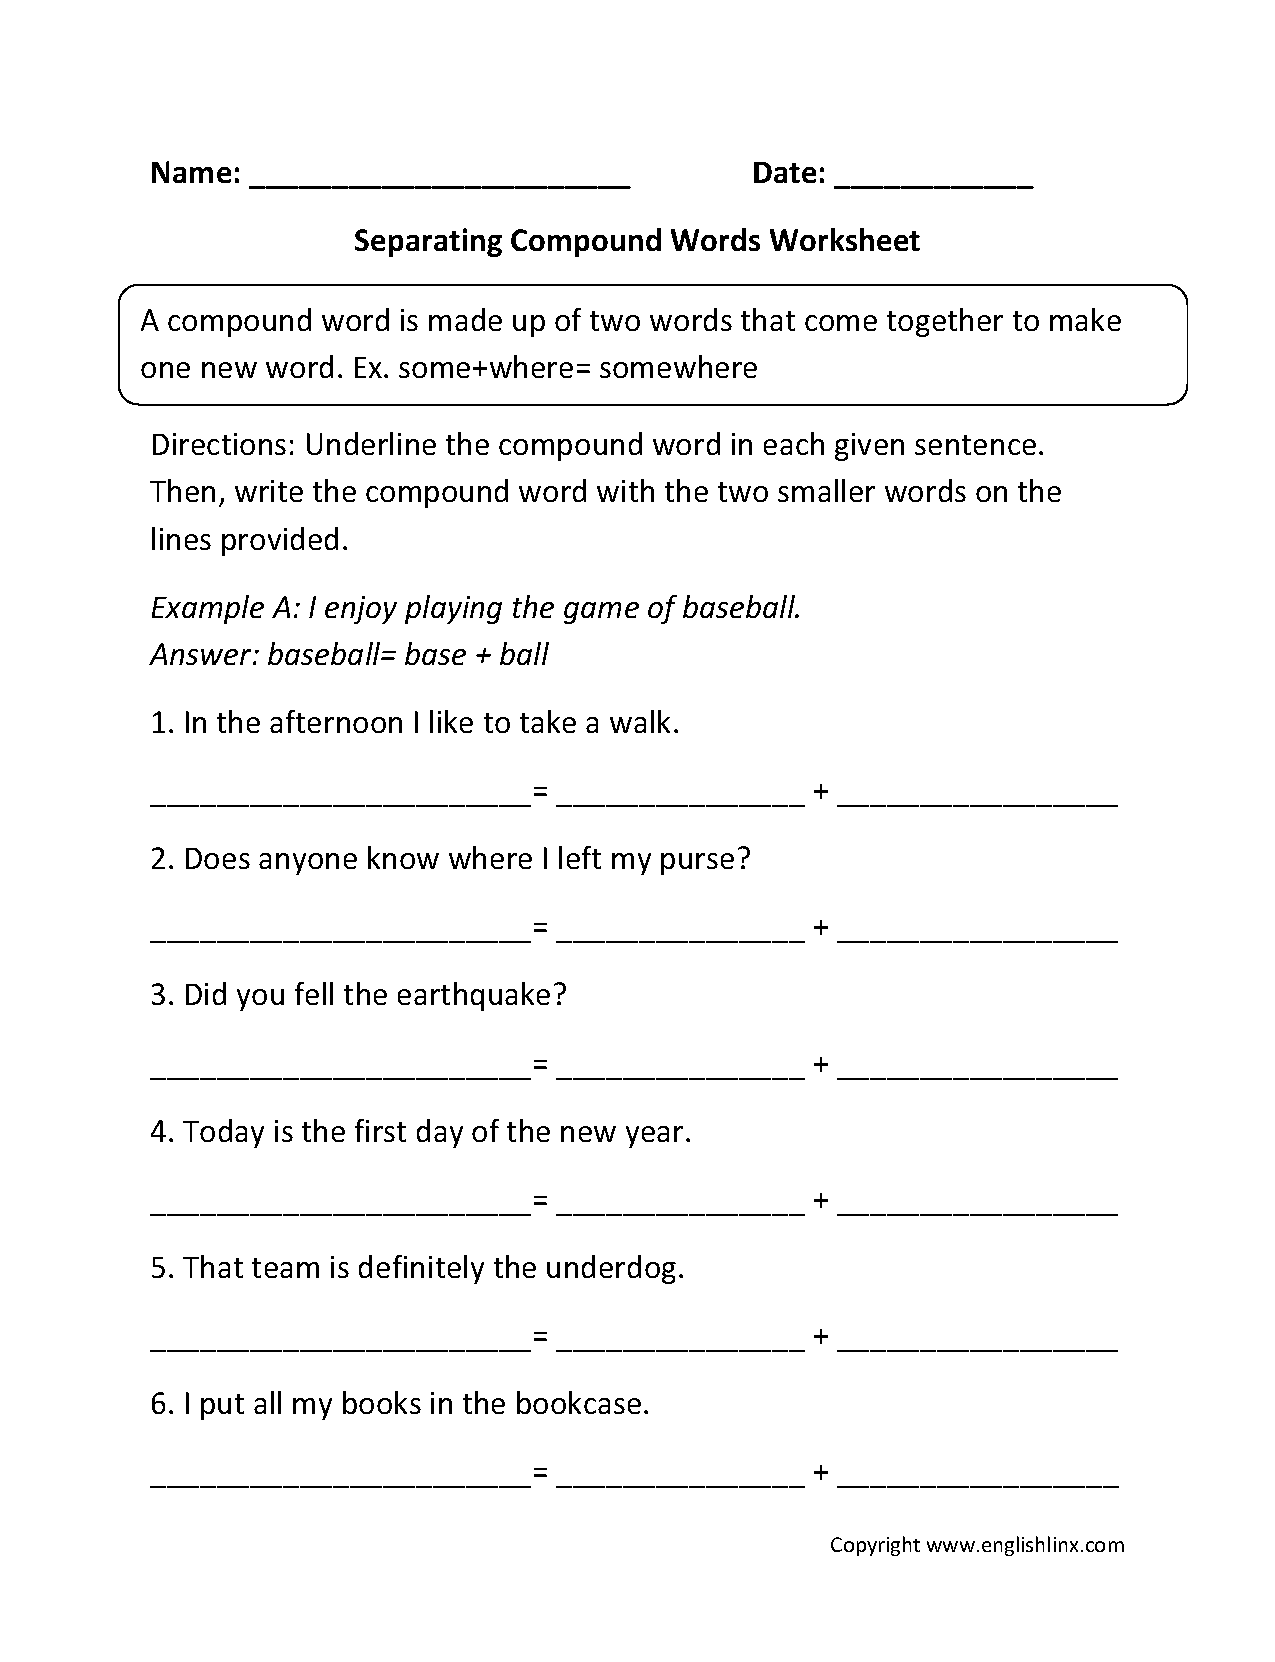 hight resolution of Compound Words Worksheets   Separating Compound Words Worksheets